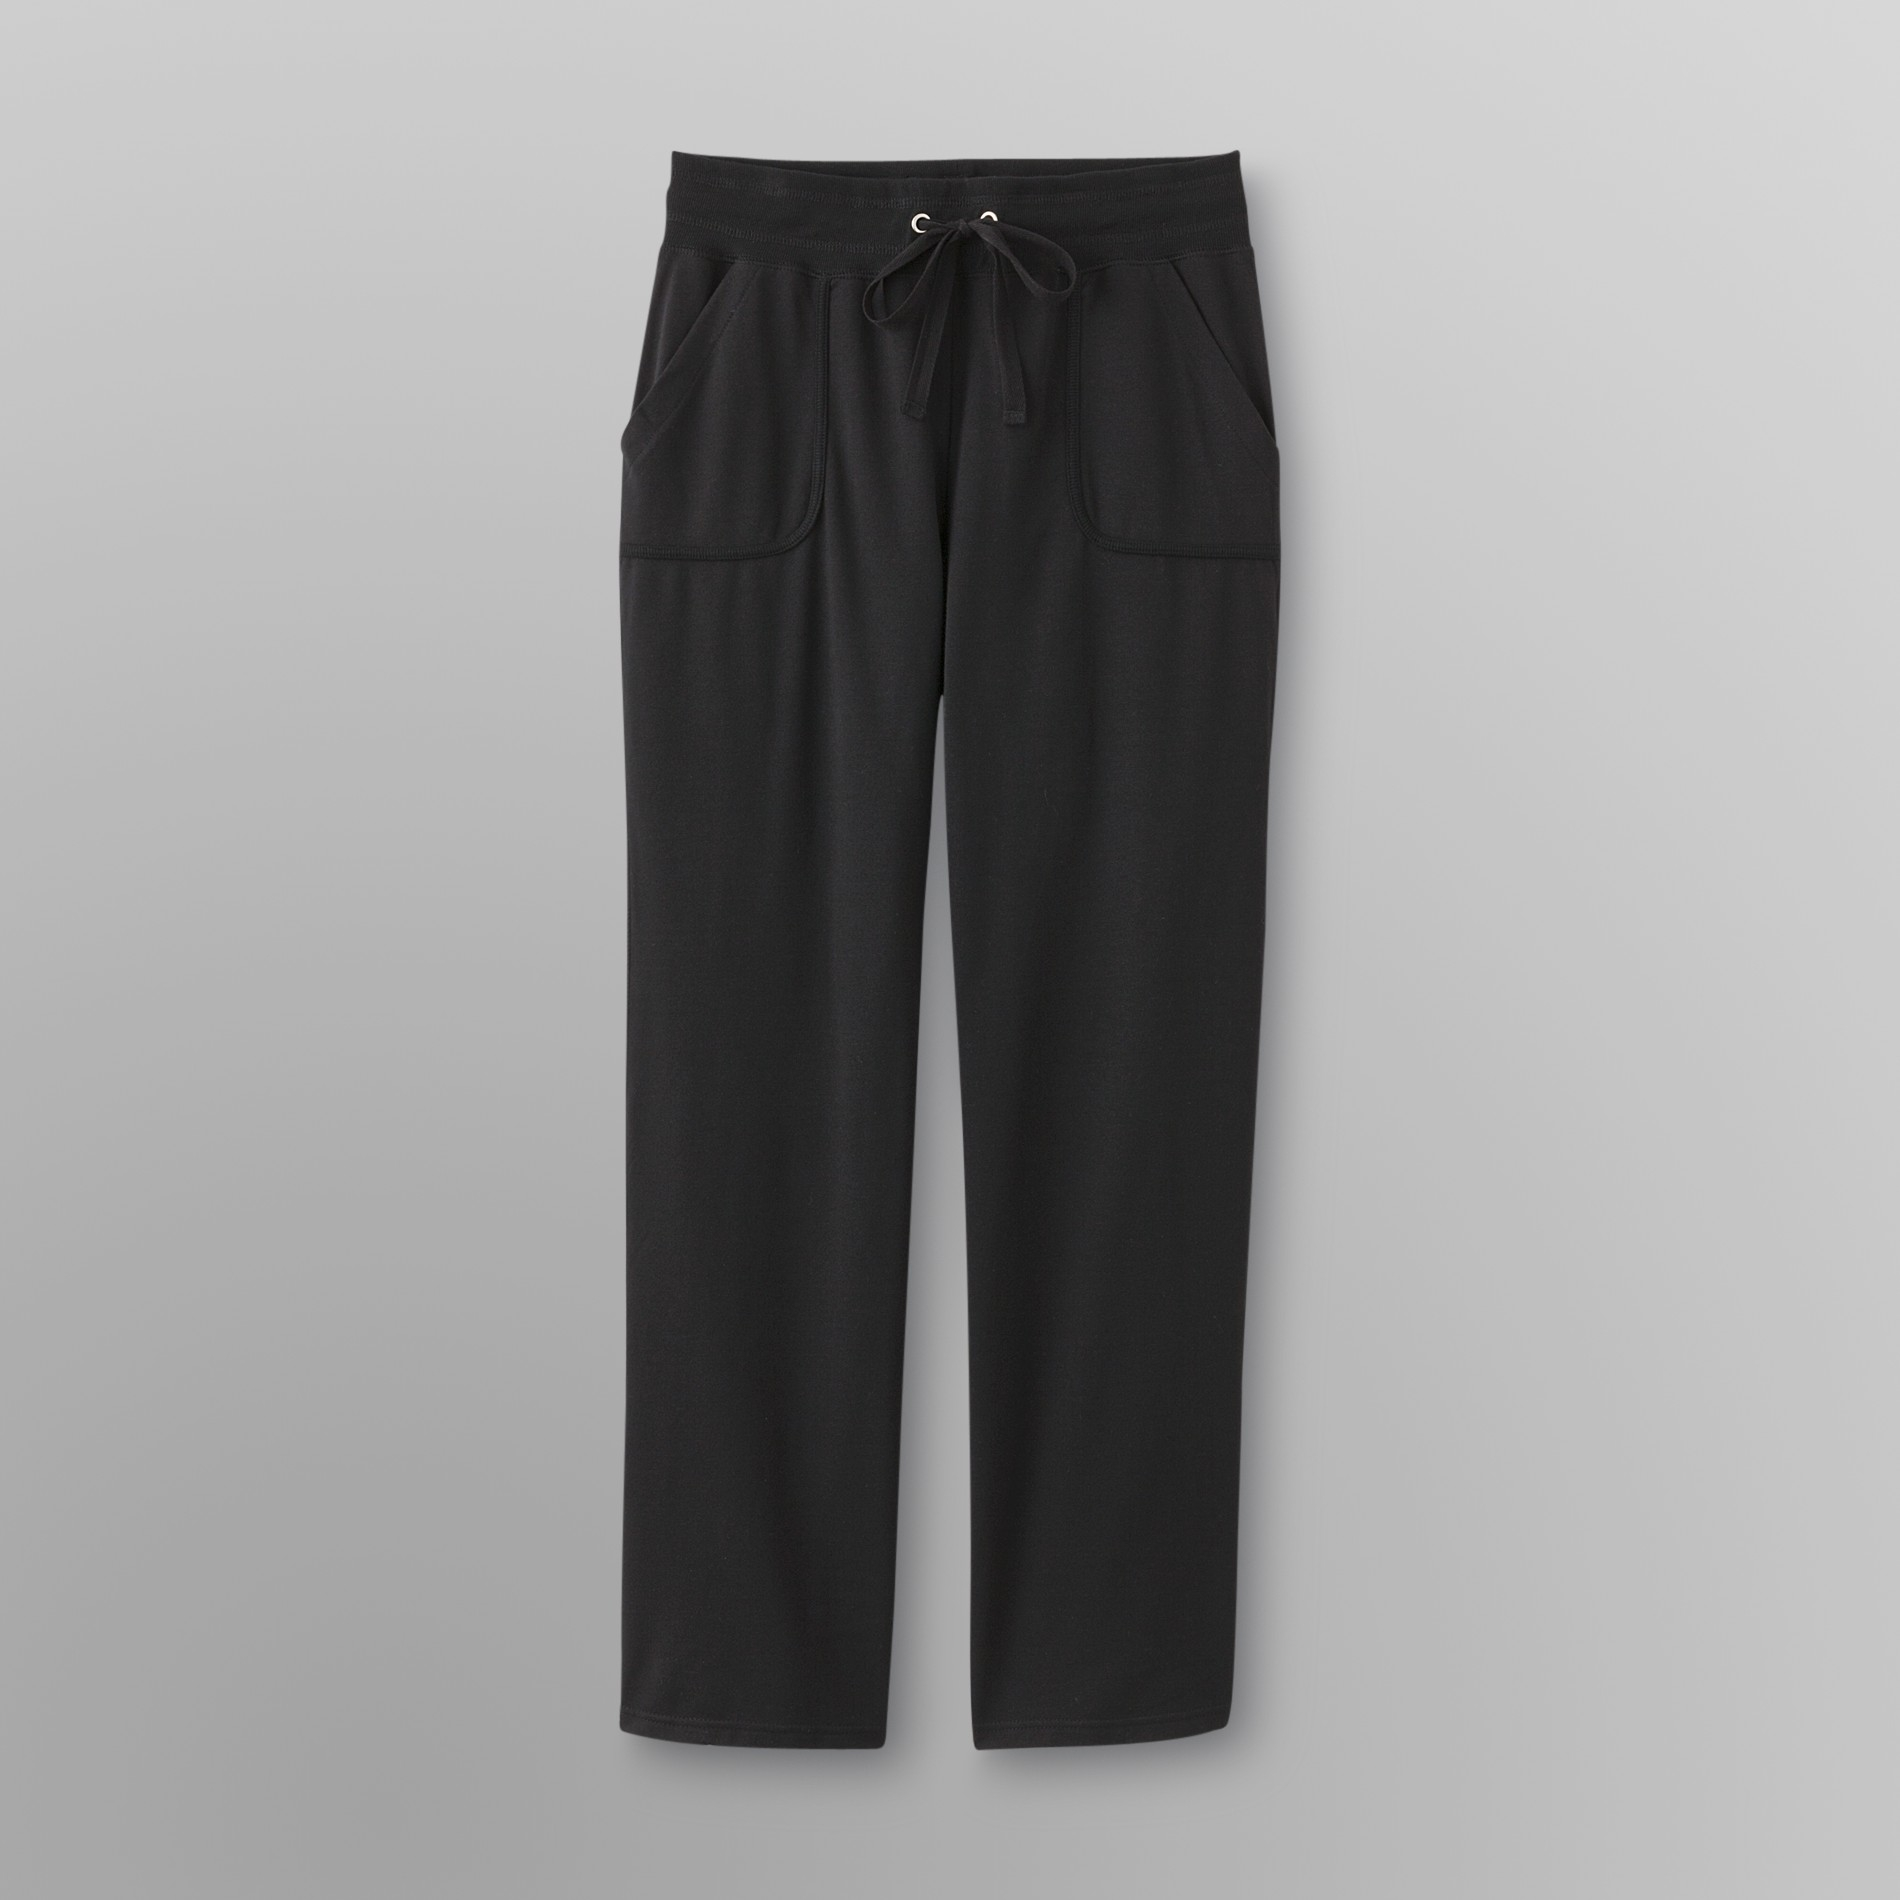 Athletech Women's French Terry Lounge Pants at Kmart.com